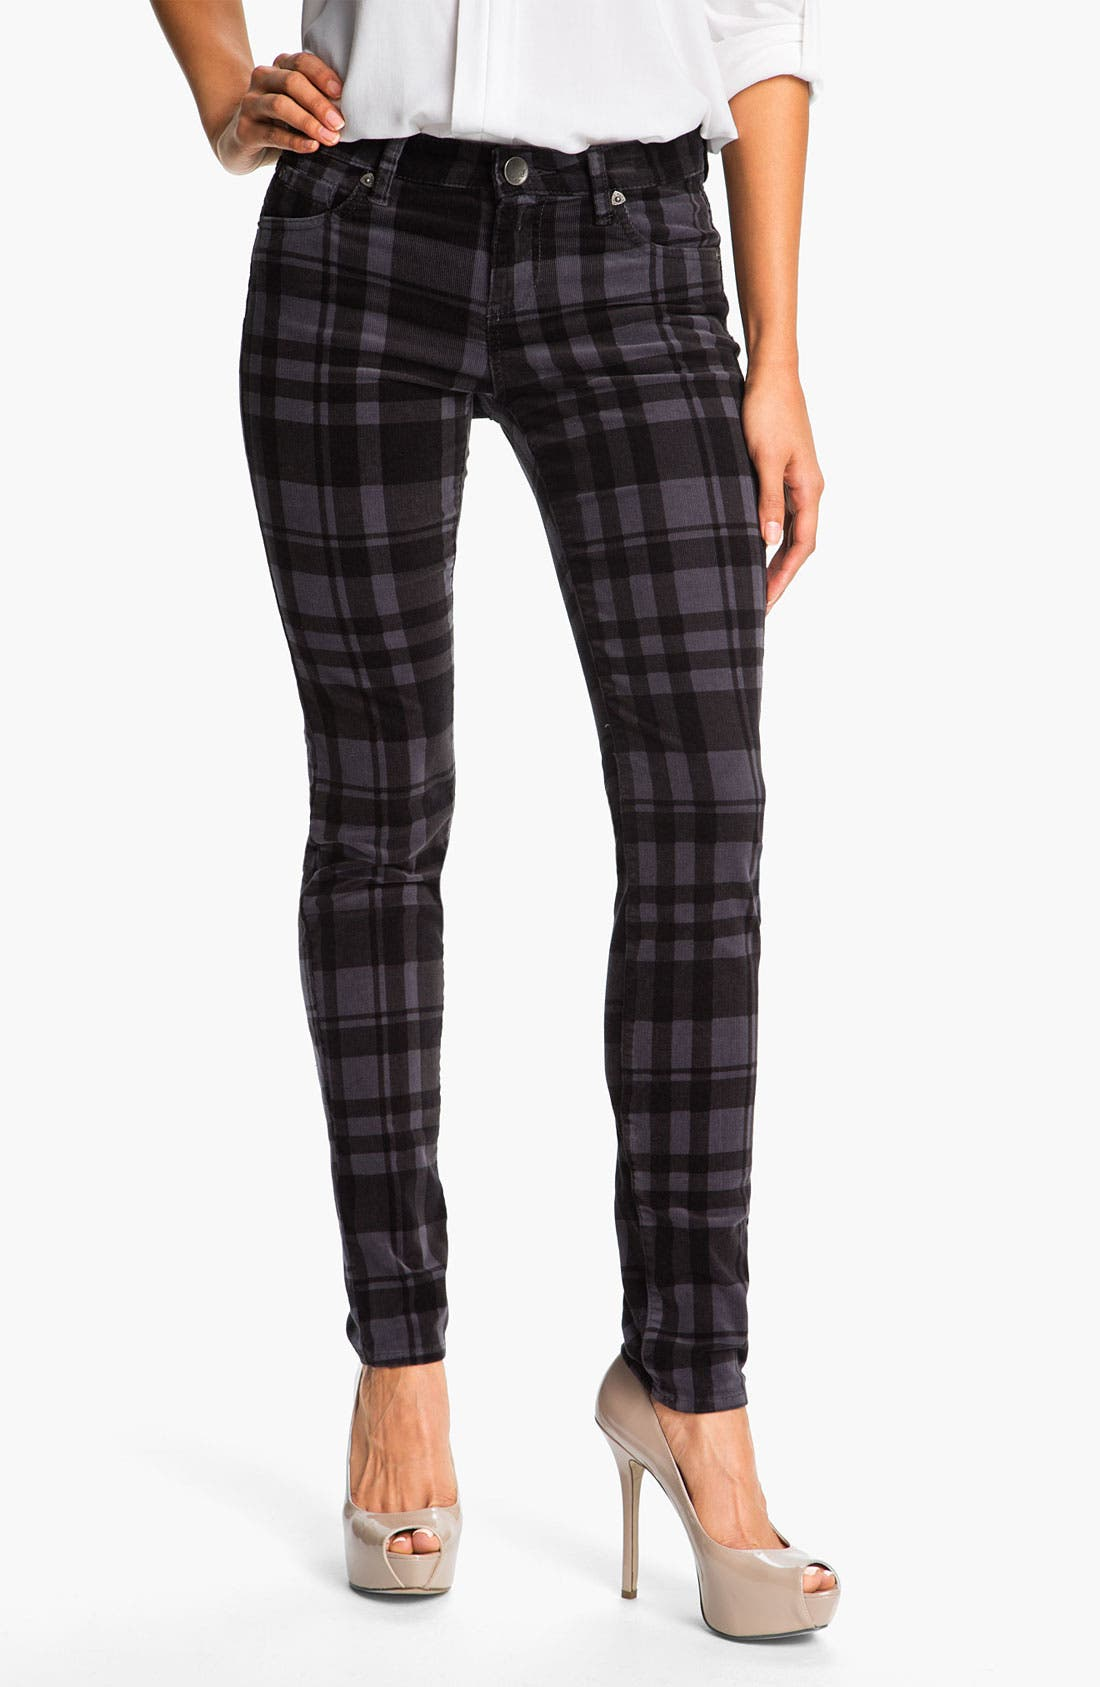 Alternate Image 1 Selected - KUT from the Kloth Plaid Corduroy Pants